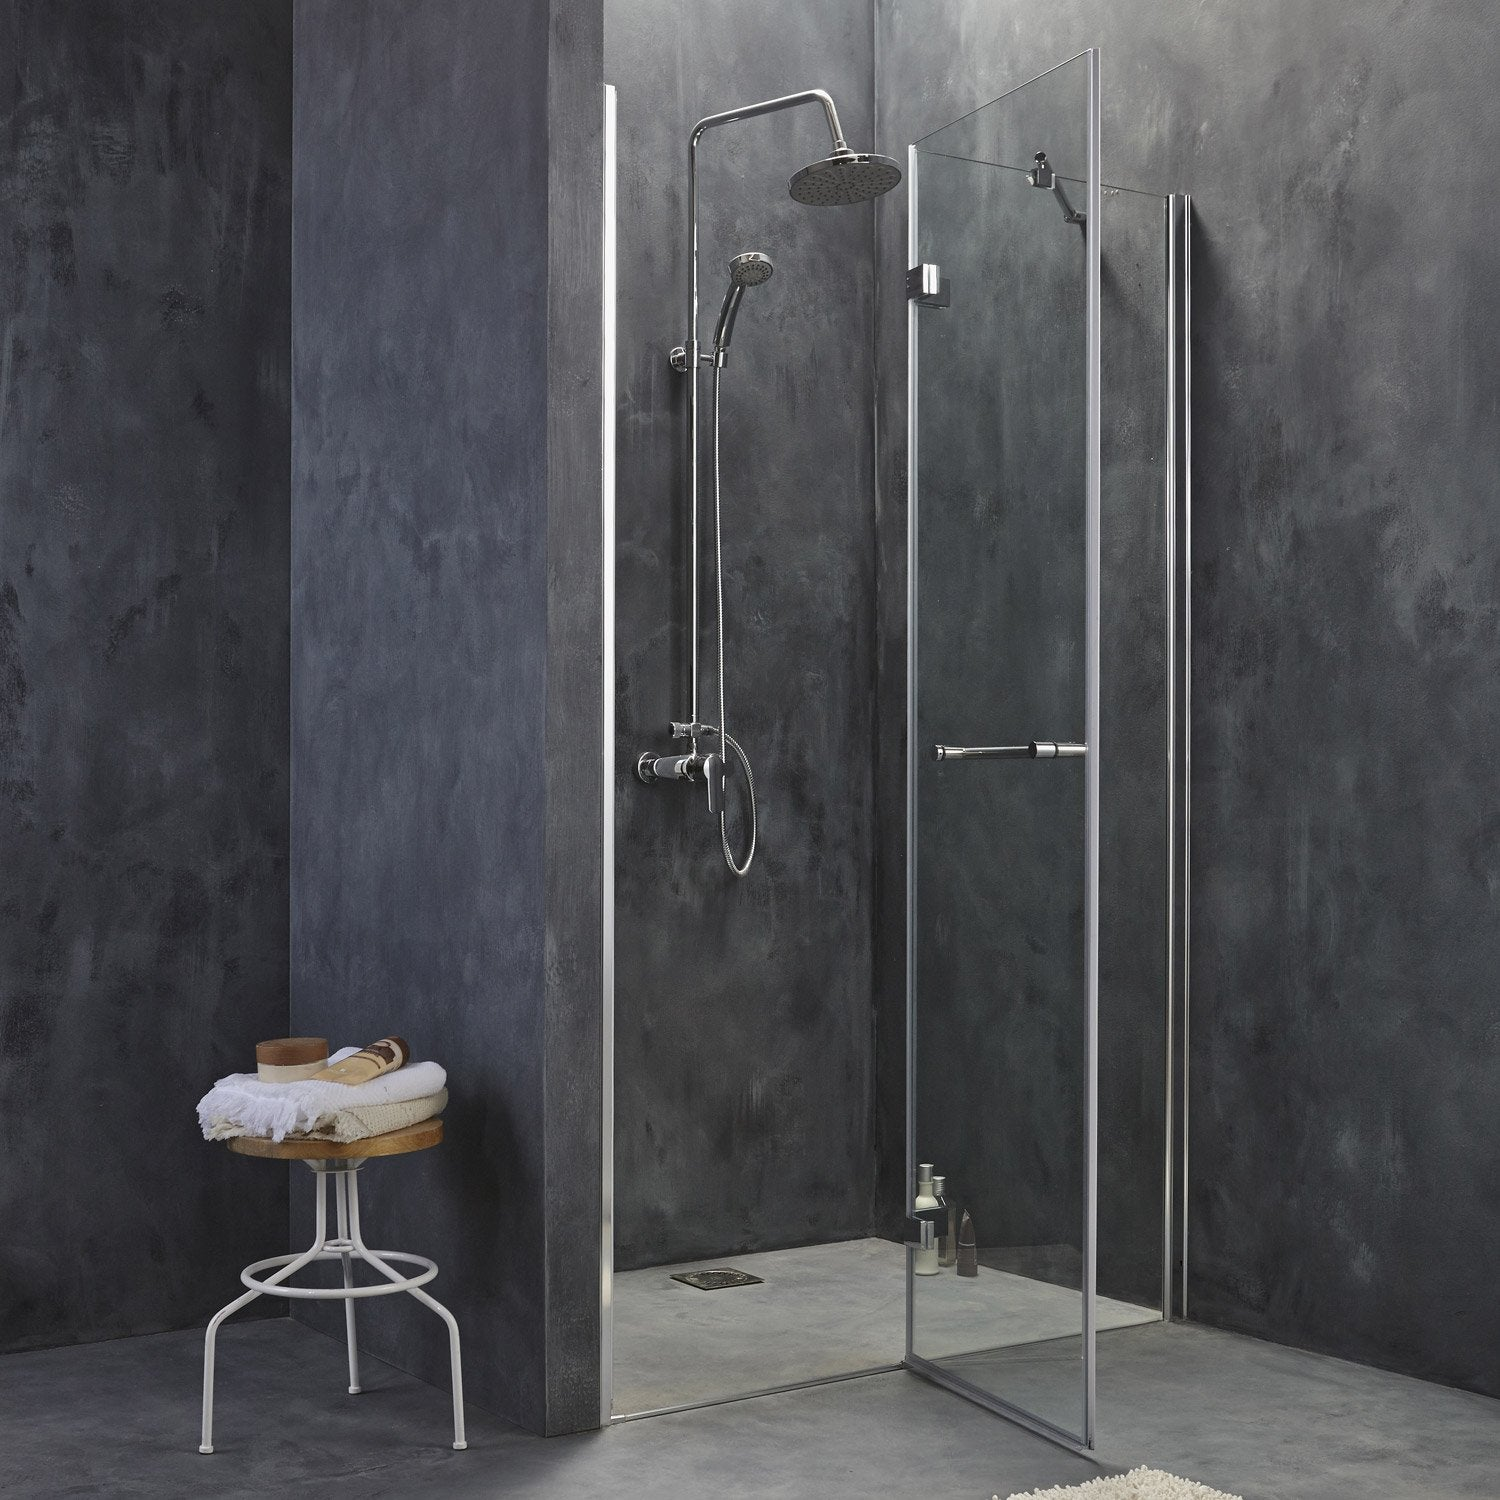 Porte de douche pivotante 120 cm transparent open2 for Porte de douche leroy merlin